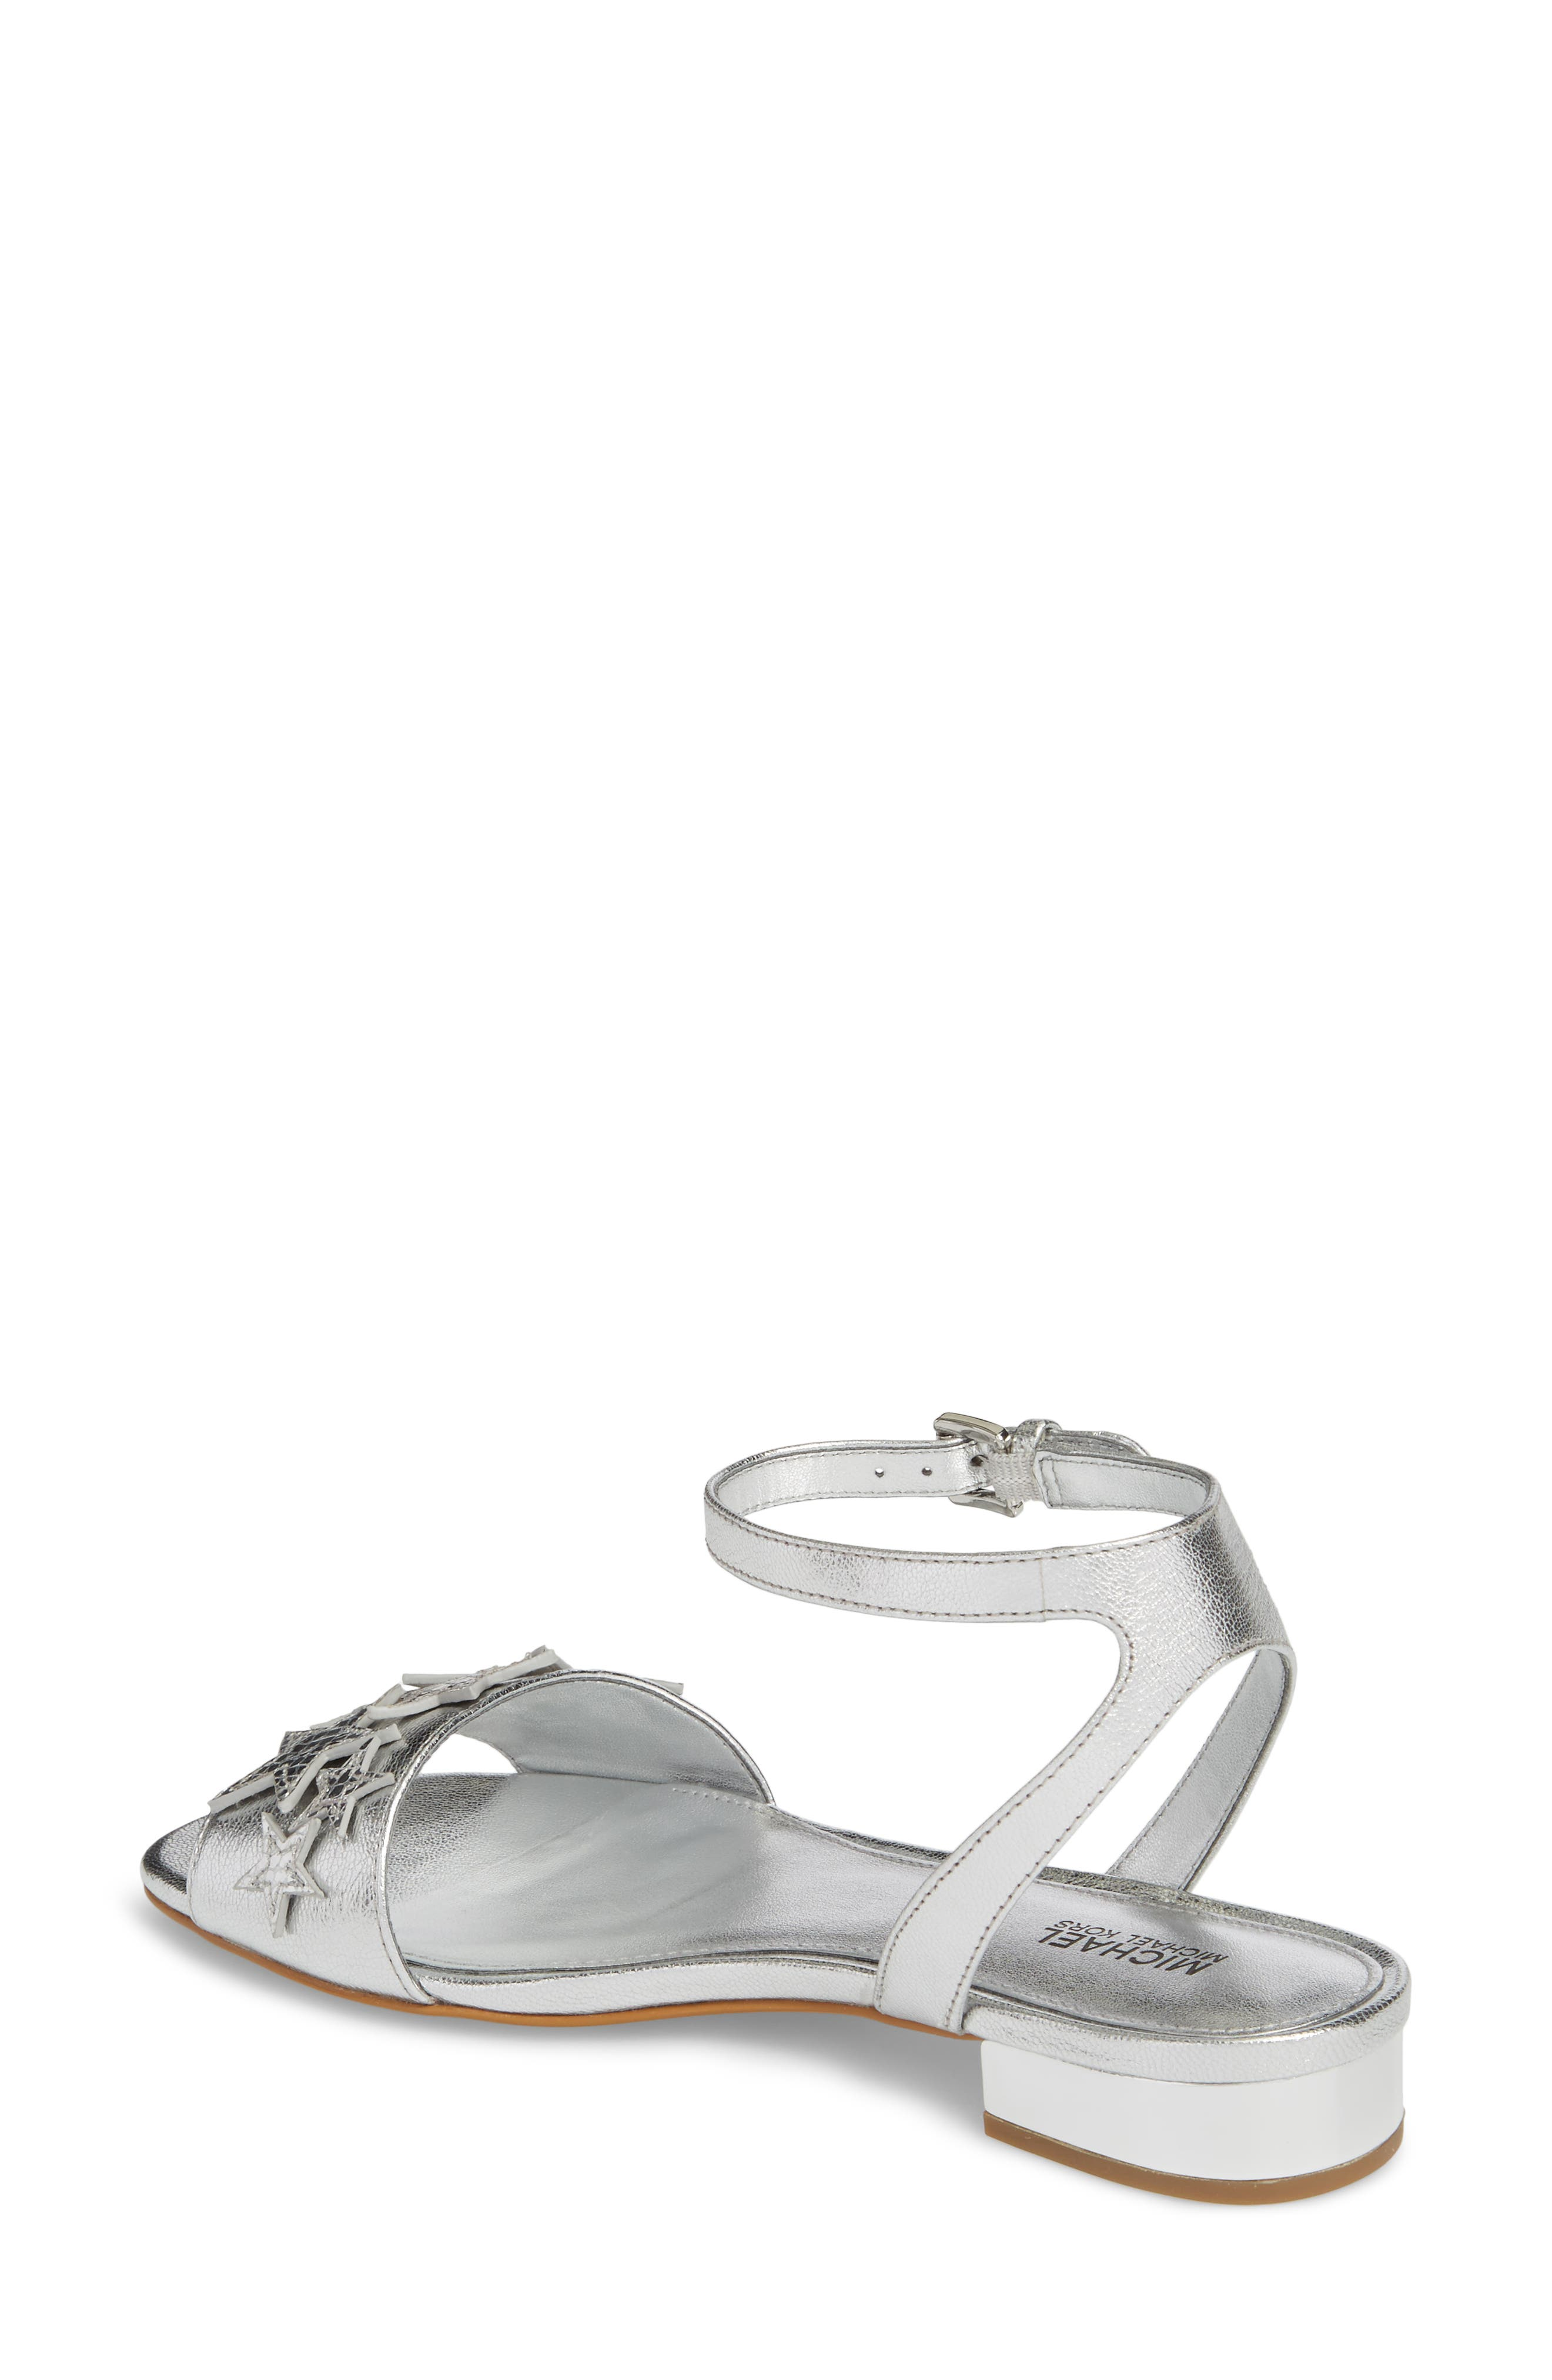 Lexie Star Embellished Sandal,                             Alternate thumbnail 2, color,                             Silver Nappa Leather